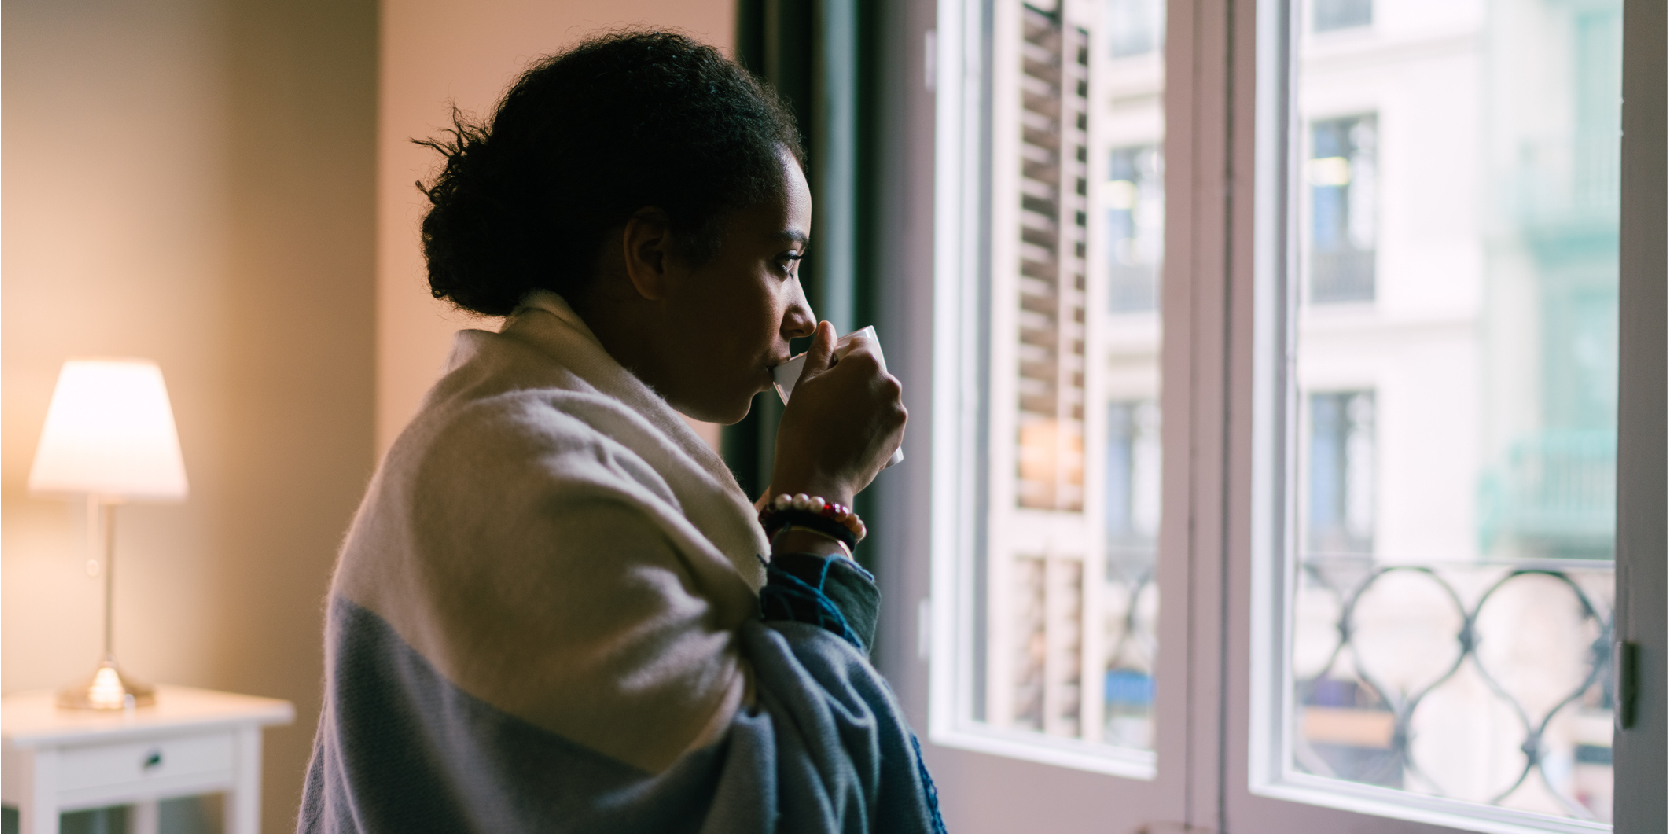 Woman sipping hot drink while looking out window